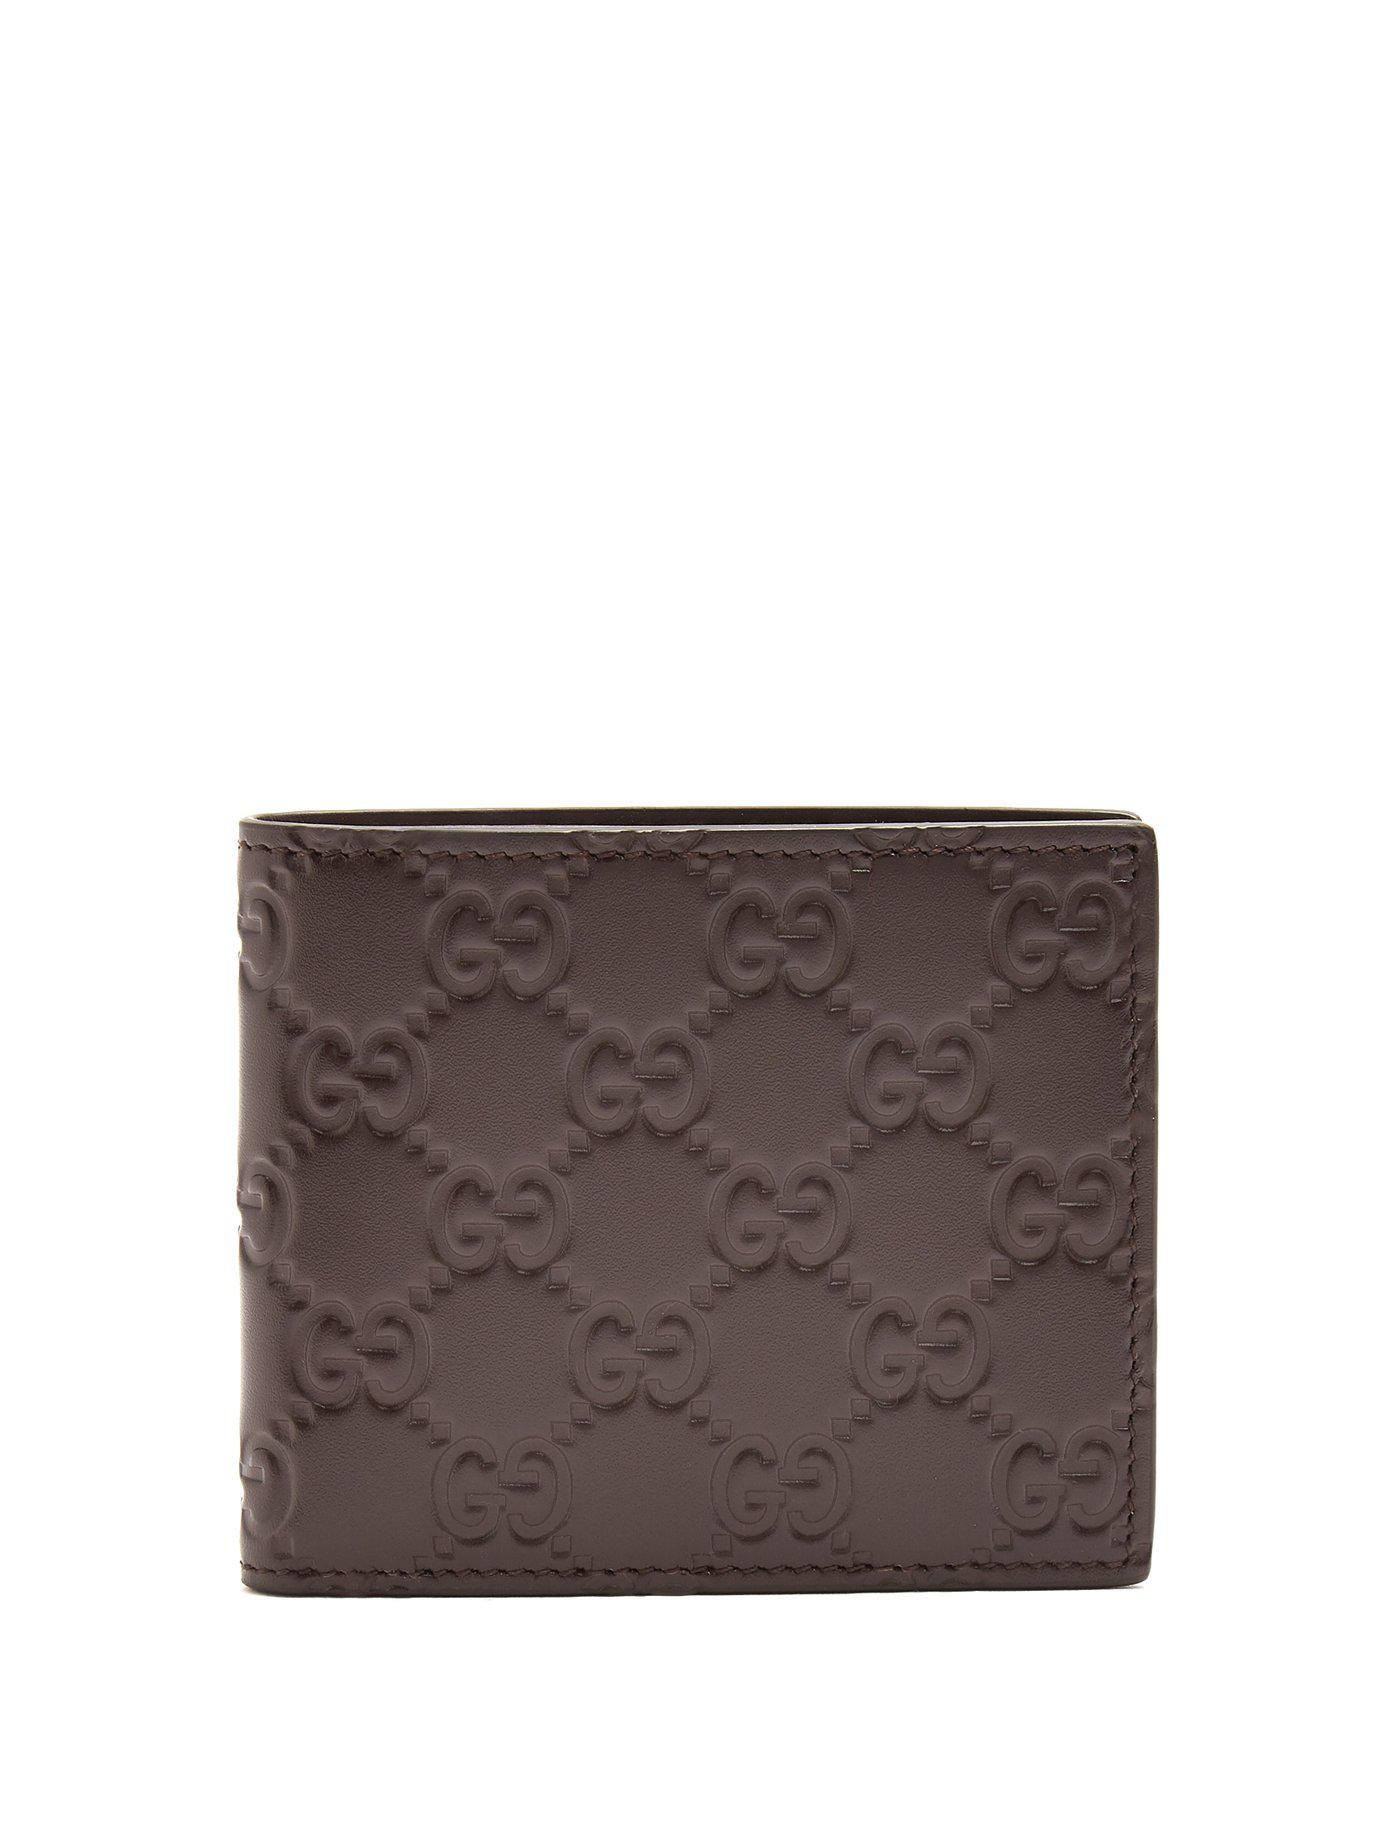 75458e014b74 Lyst - Gucci Gg Debossed Bi Fold Leather Wallet in Brown for Men